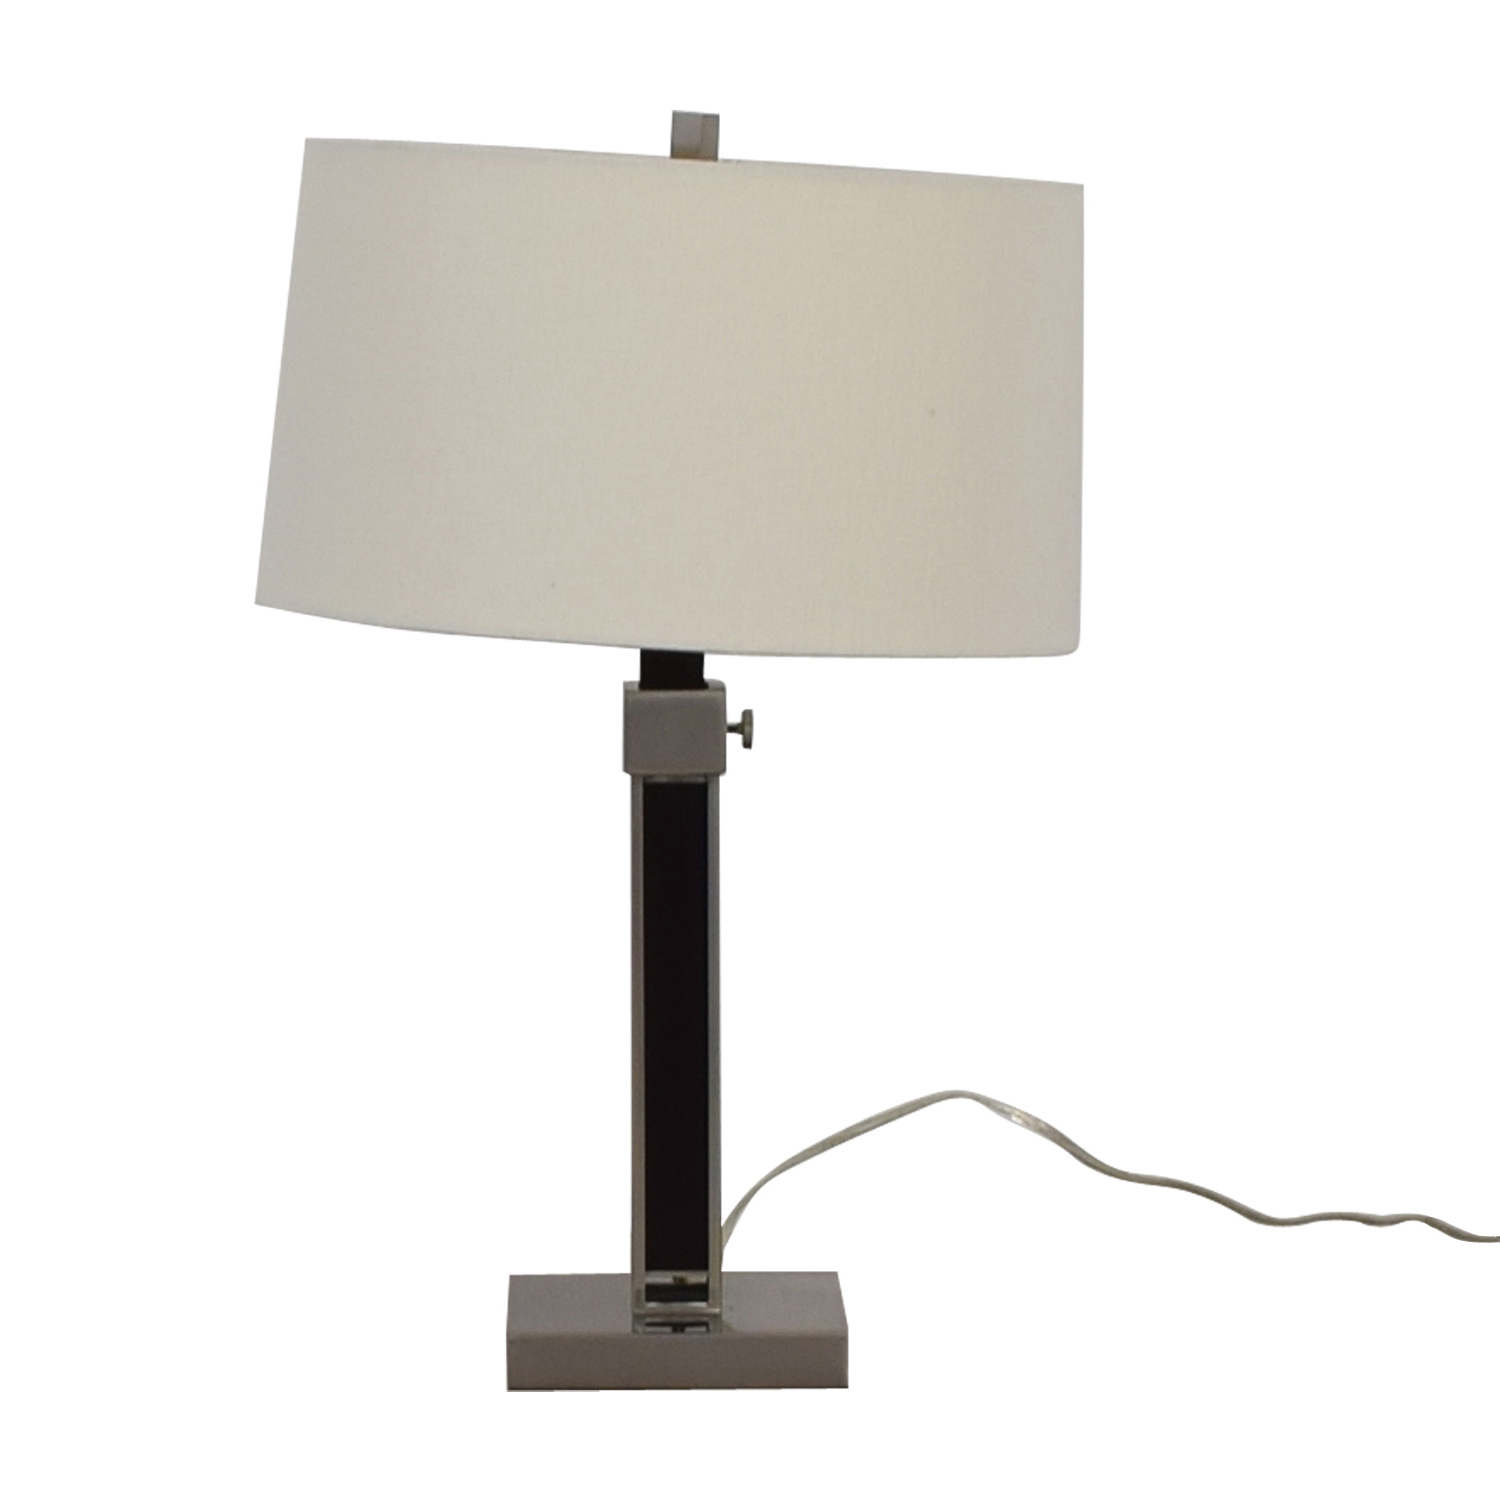 Crate & Barrel Crate & Barrel Denley Table Lamp nj